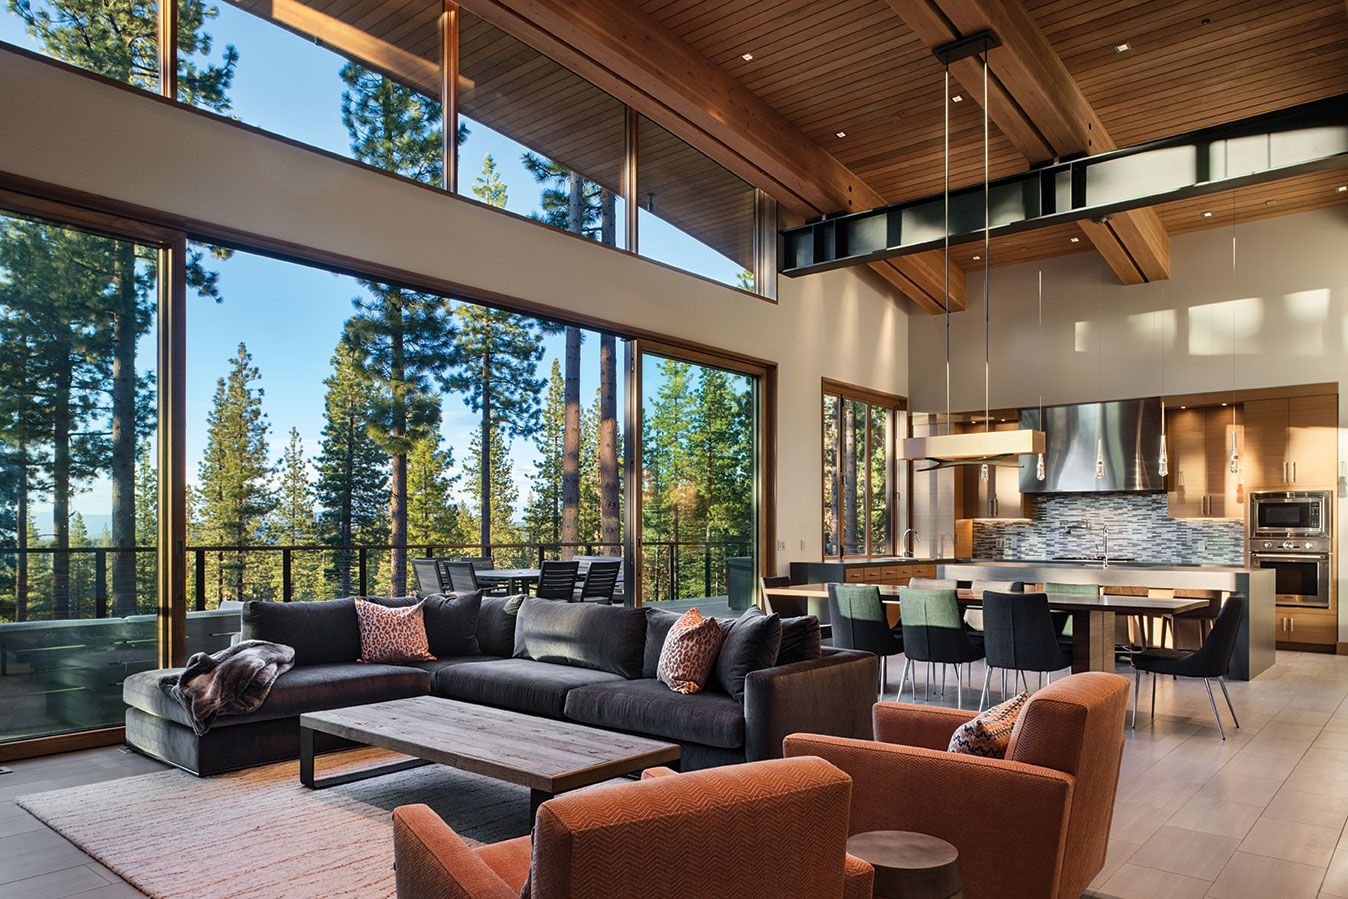 Martis camp home blends in yet stands out with a simple arc and